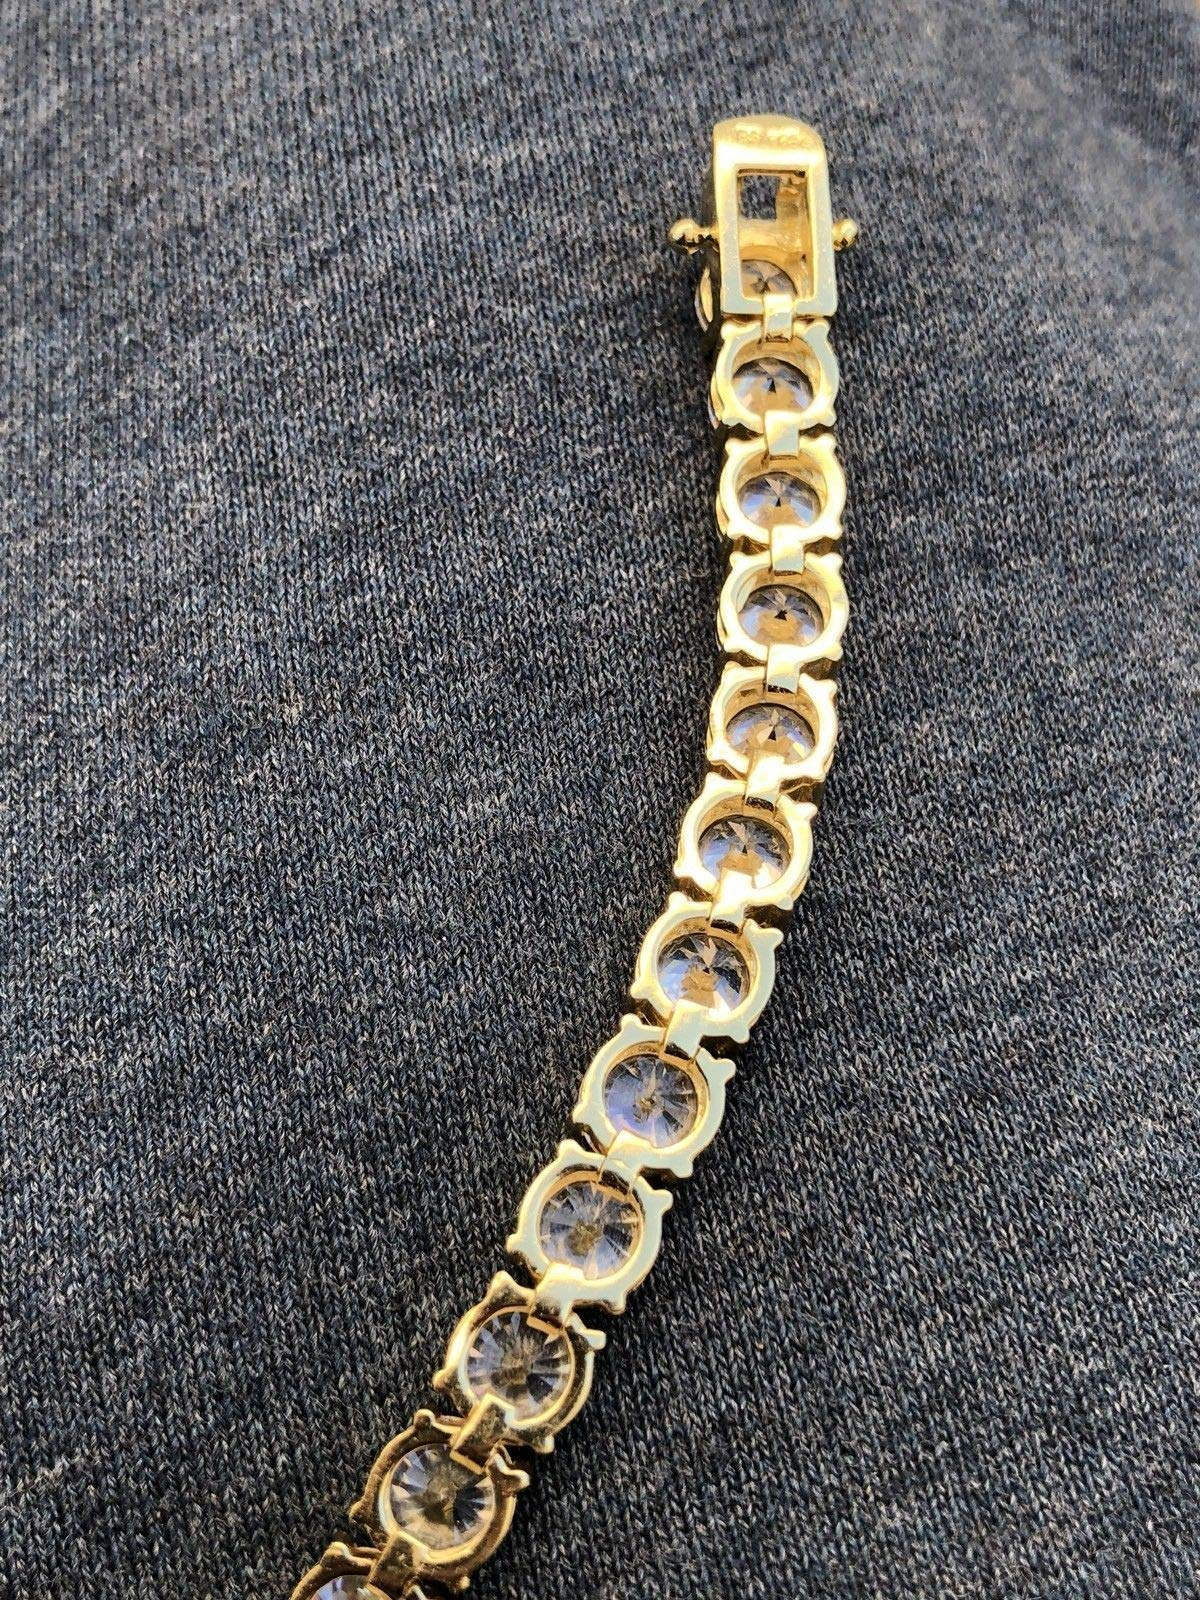 Harlembling Real Solid 925 Silver Men's Tennis Chain - 14k Gold Plated Or Natural Silver - 16-30'' - 3mm 4mm 5mm 6mm - Iced Out Hip Hop CZ Men's One Row Chain (18, 5mm Natural Silver) by Harlembling (Image #5)